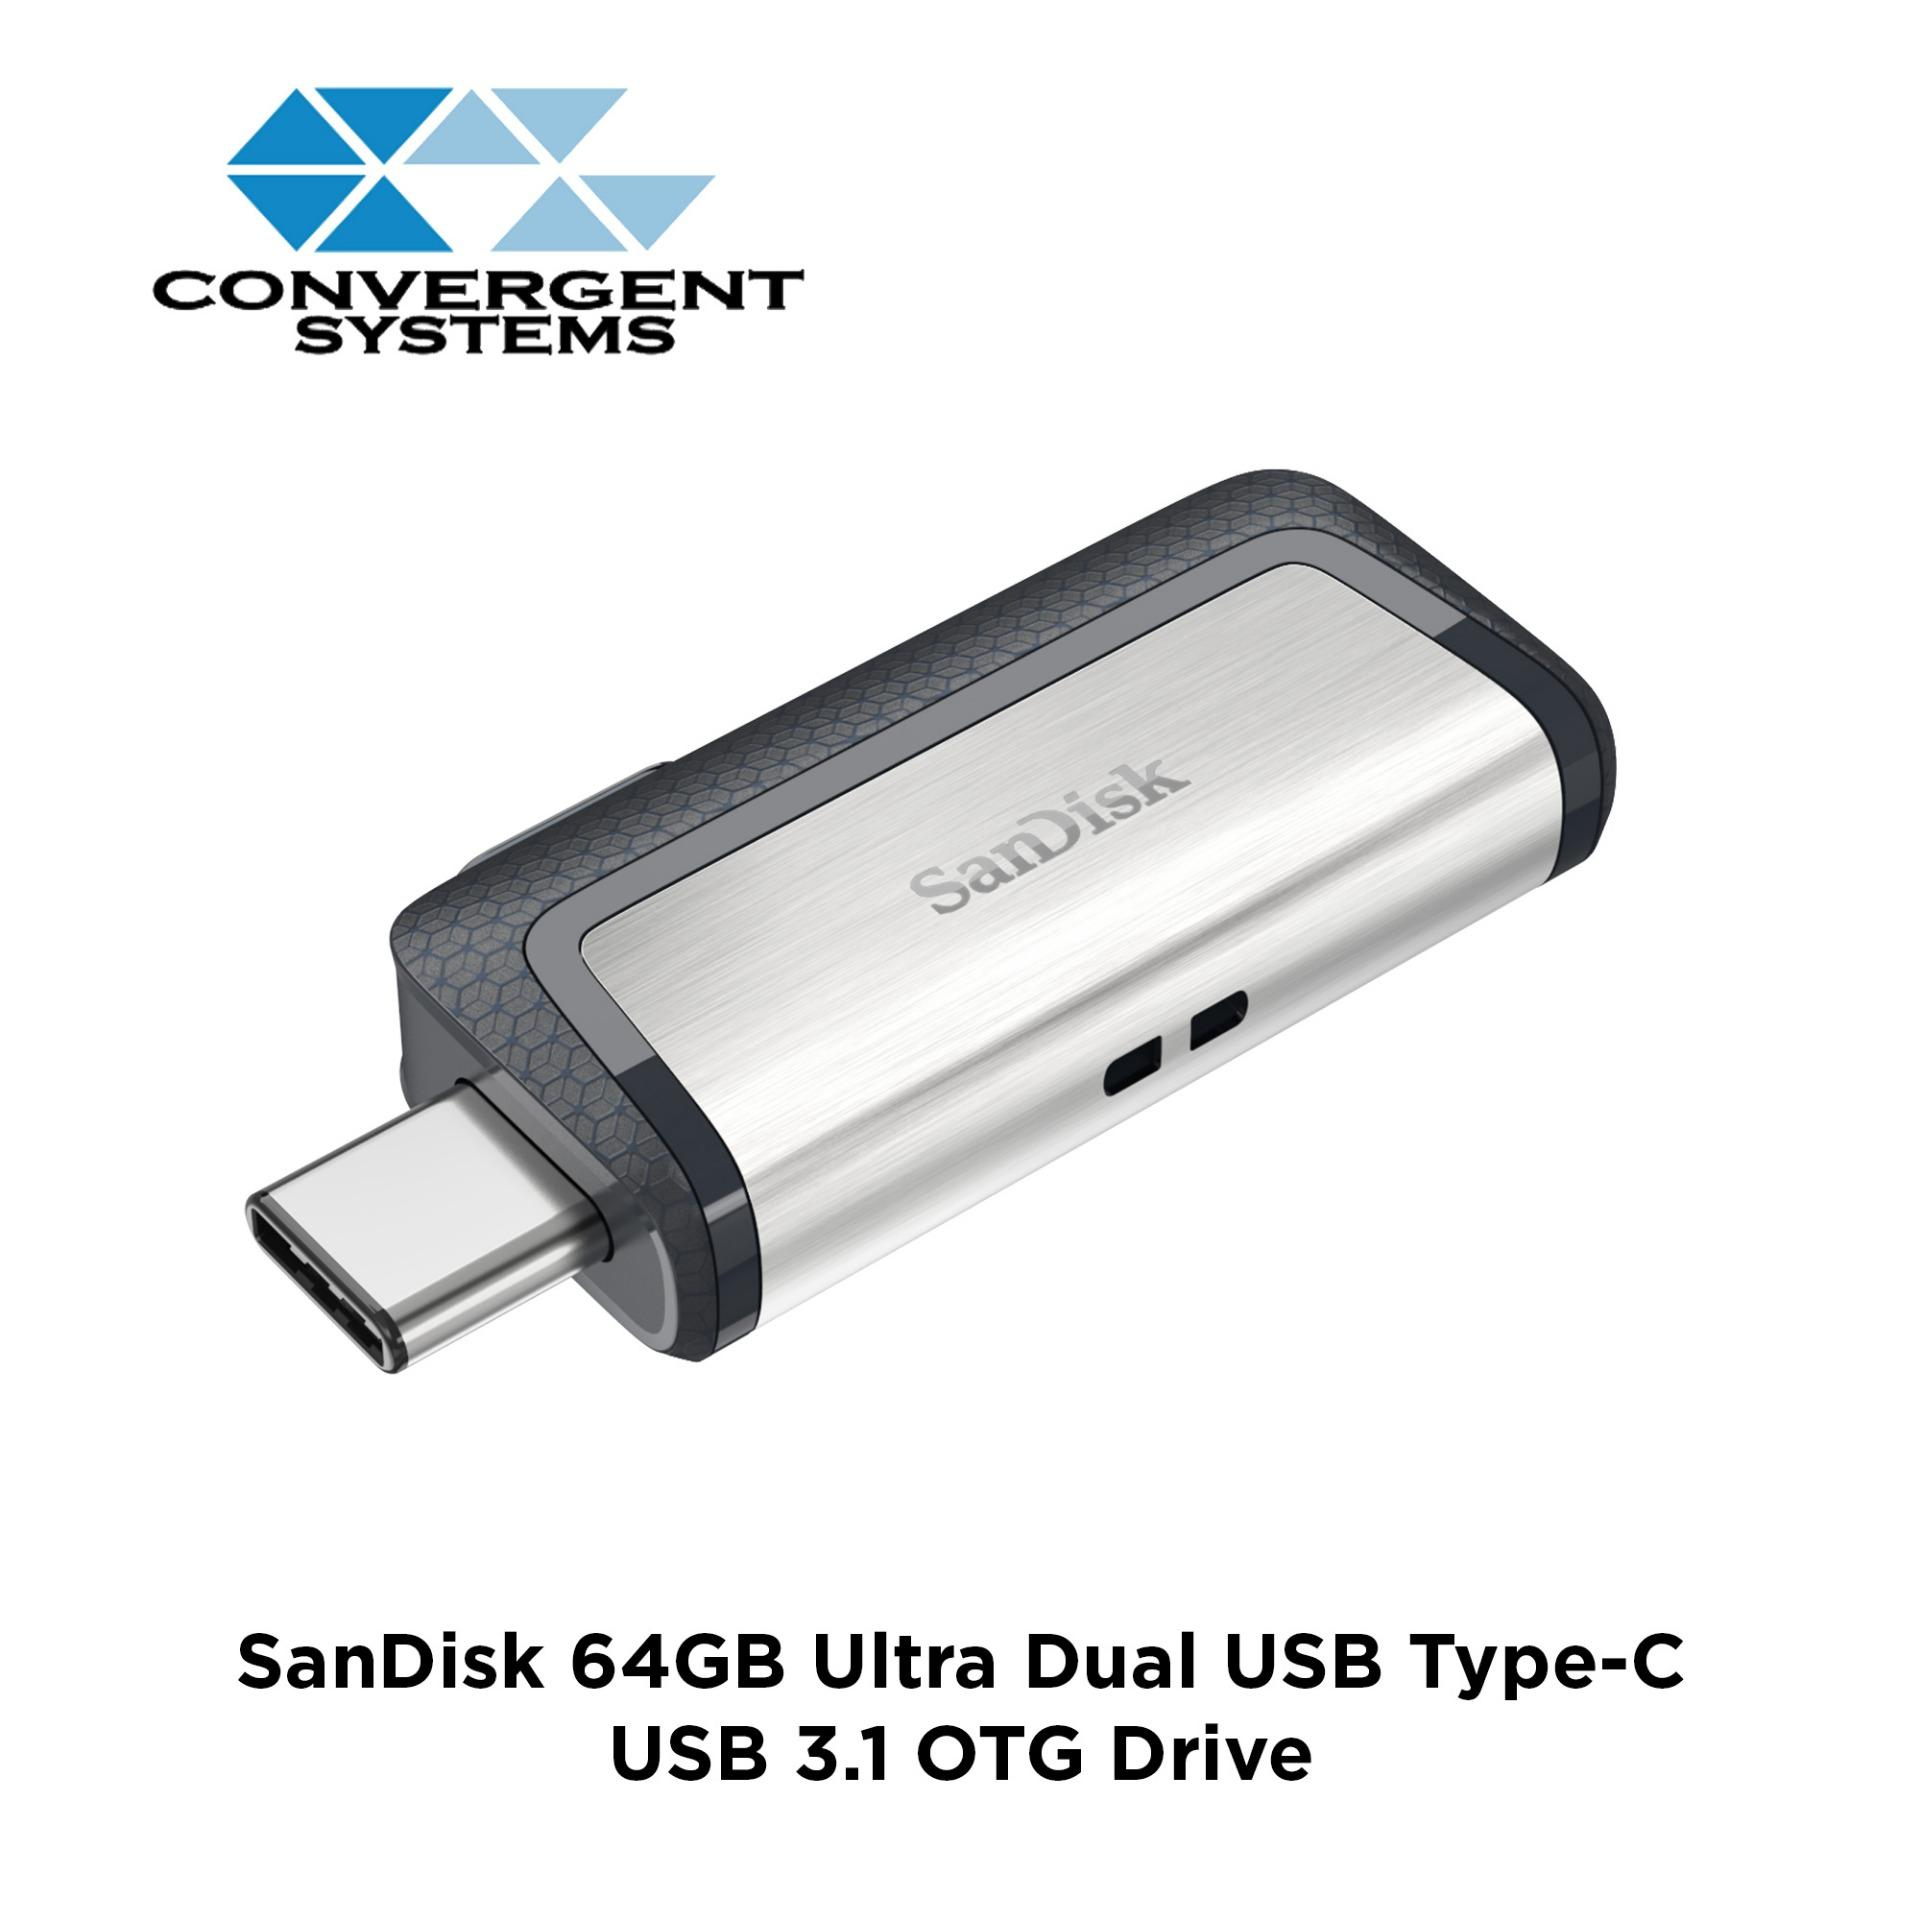 Sandisk Ultra Dual Usb 64gb Type-C Usb 3.1 Otg Drive Sdddc2 By Convergent Systems.